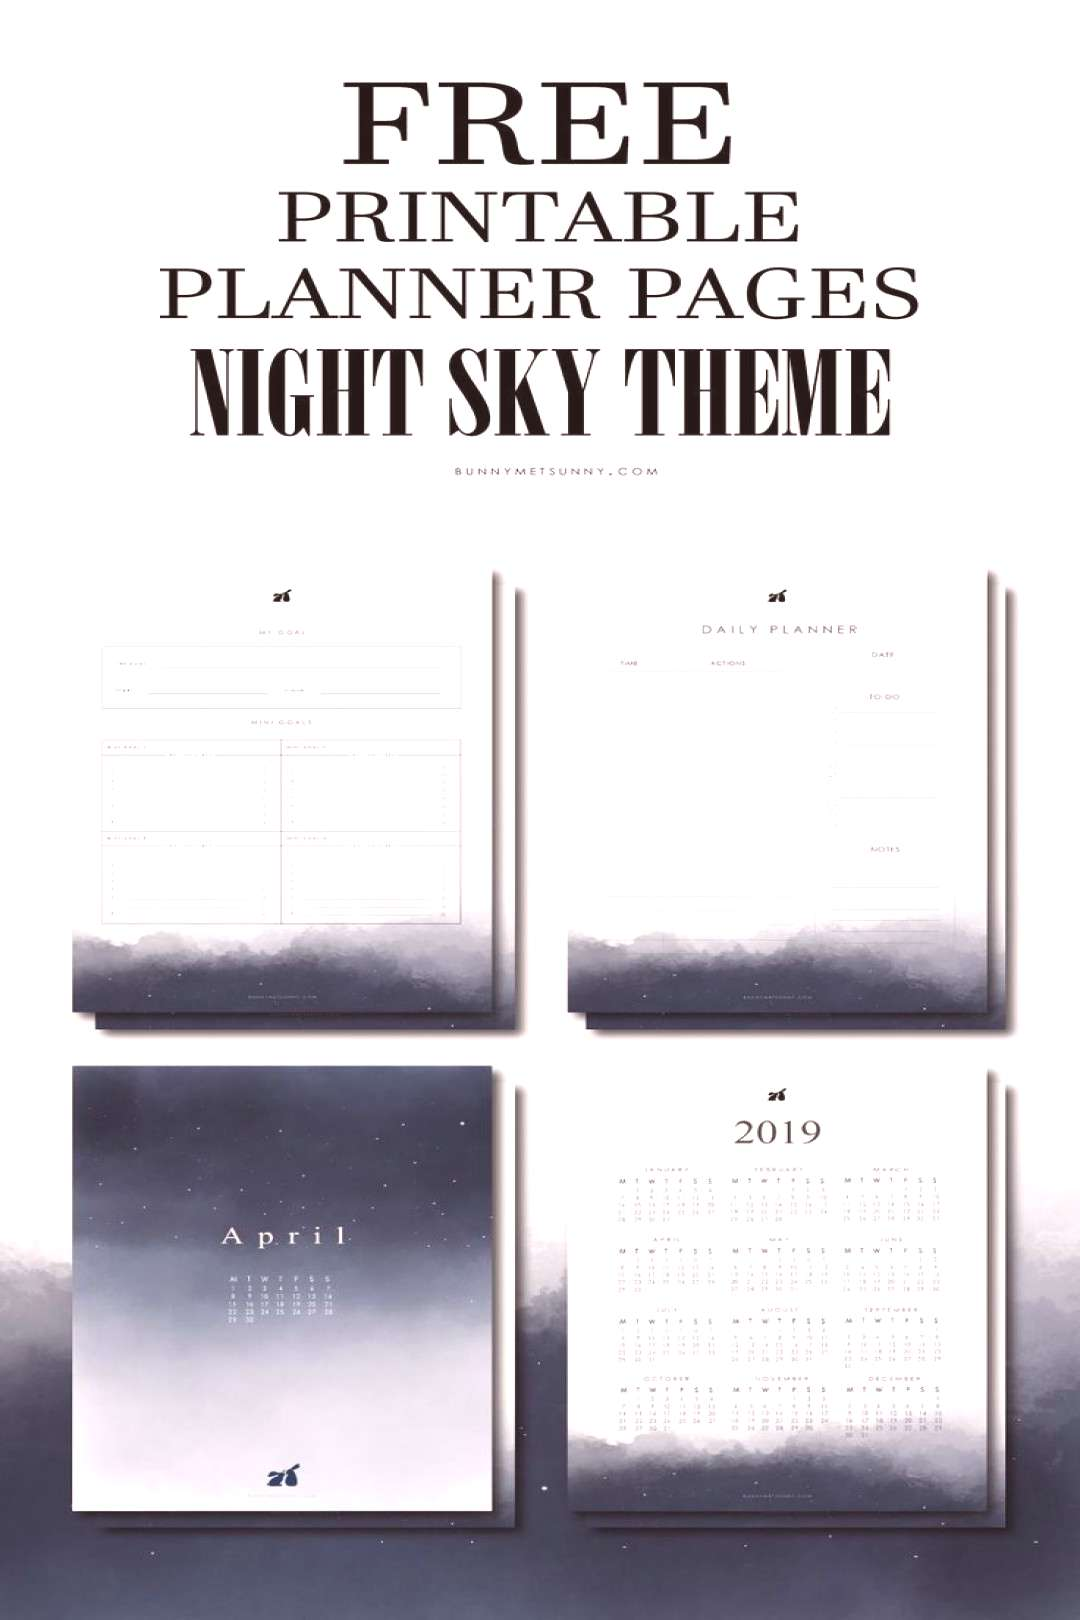 Free Printable Planner Pages with Night Sky Theme. You will get yearly planner, monthly planner, we